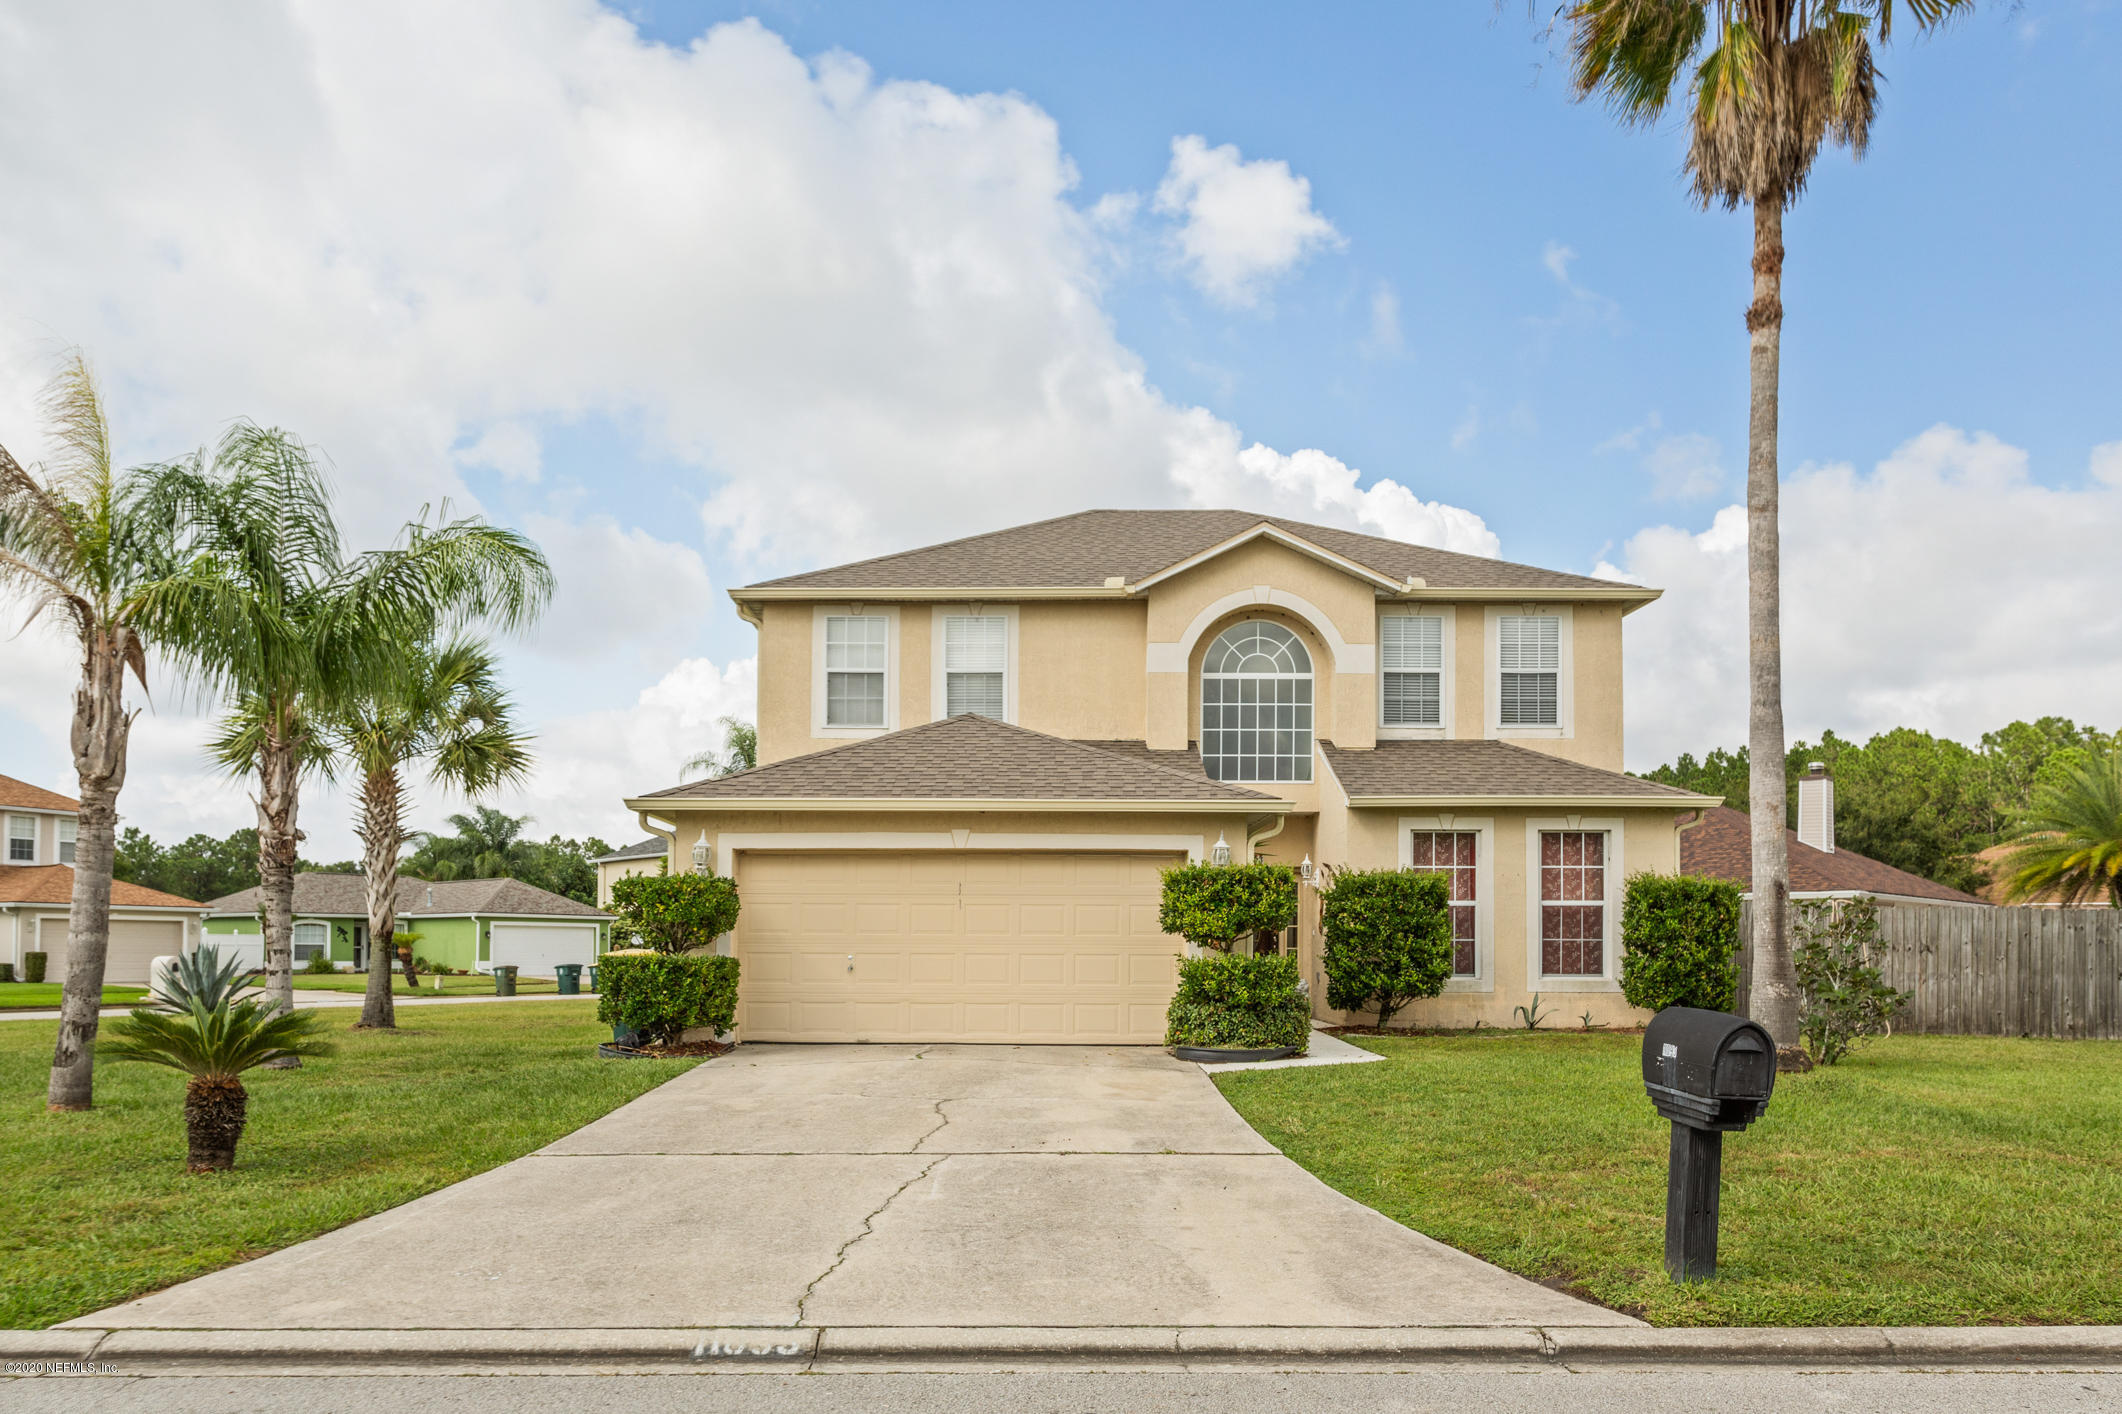 11093 LORD TAYLOR DR JACKSONVILLE - 1